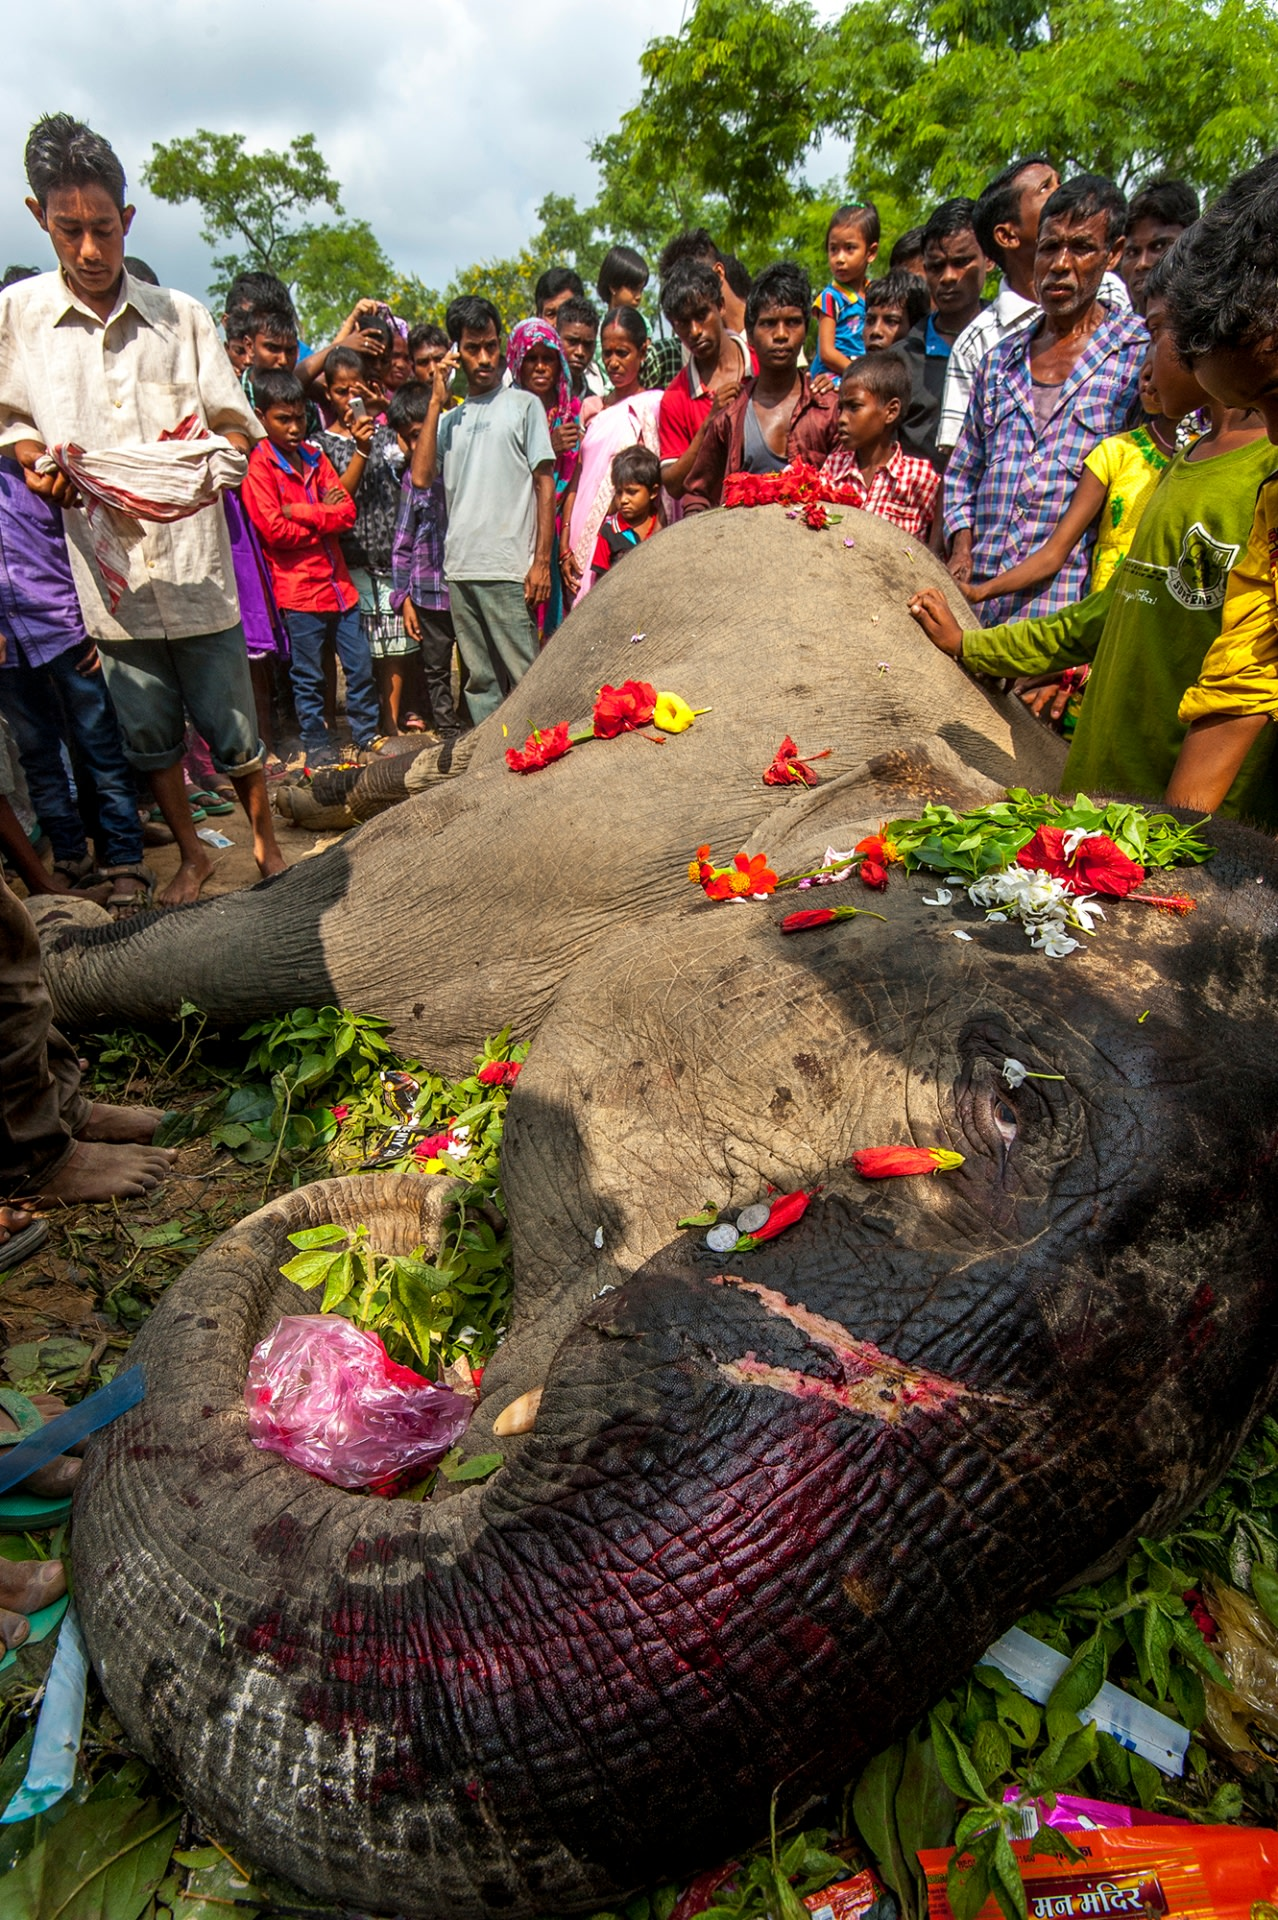 Villagers organise a funeral for an elephant that was accidentally electrocuted in Koothalguri tea state, near Hollongapar Gibbon Sanctuary. Elephant funerals are not uncommon and reinforce the bond between people and animals. Photo: Udayan Borthakur